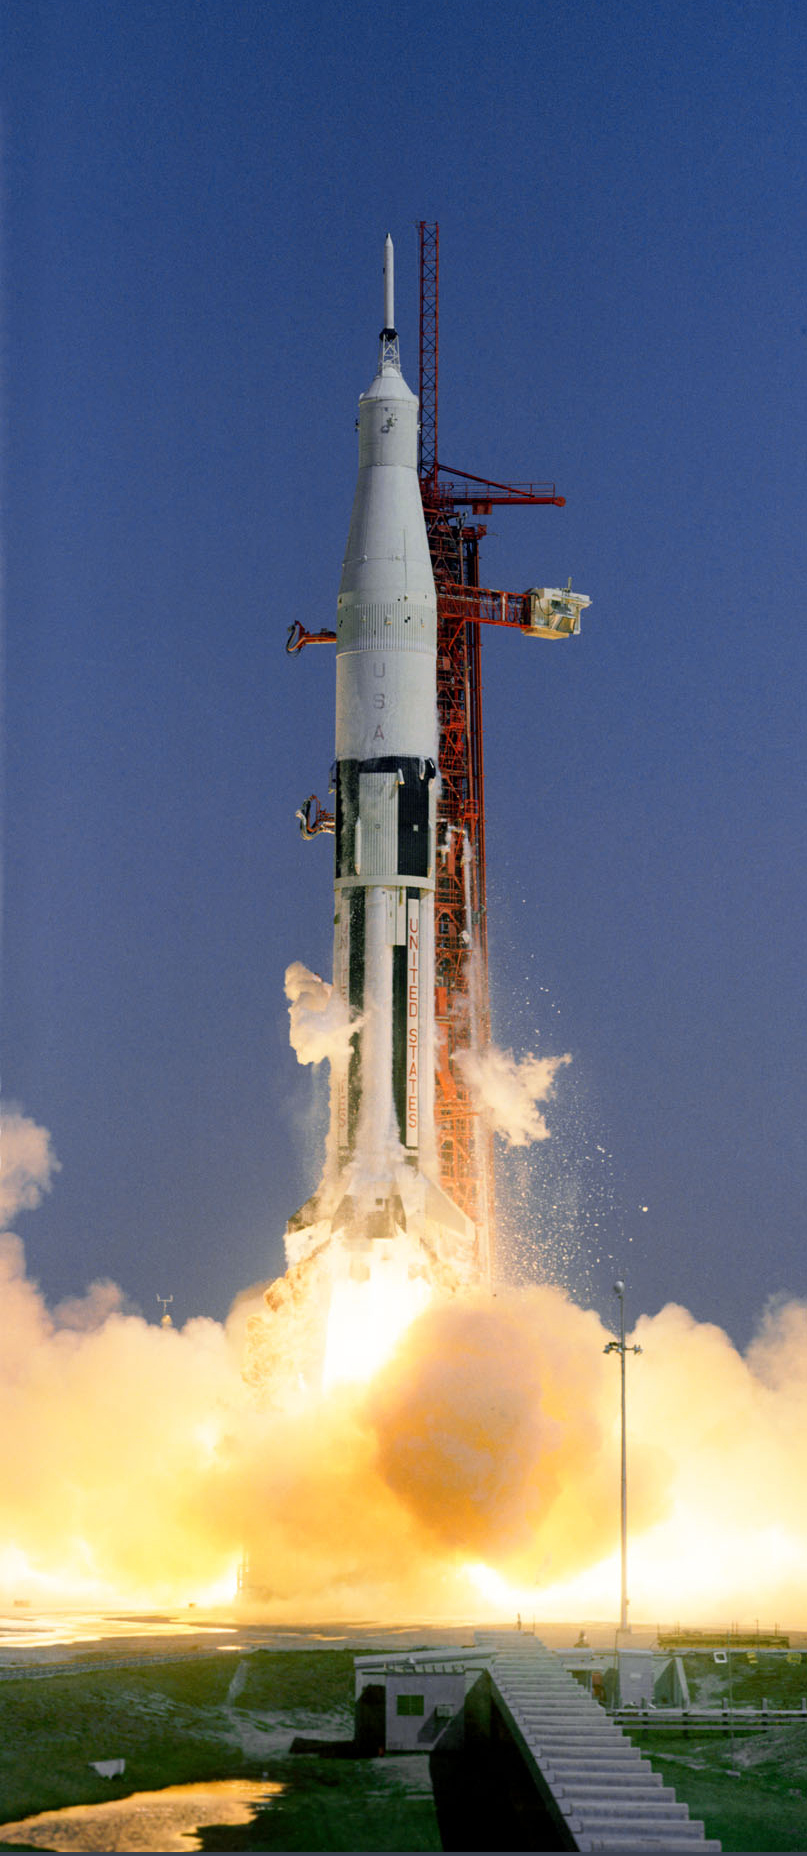 apollo space flights launched - photo #6